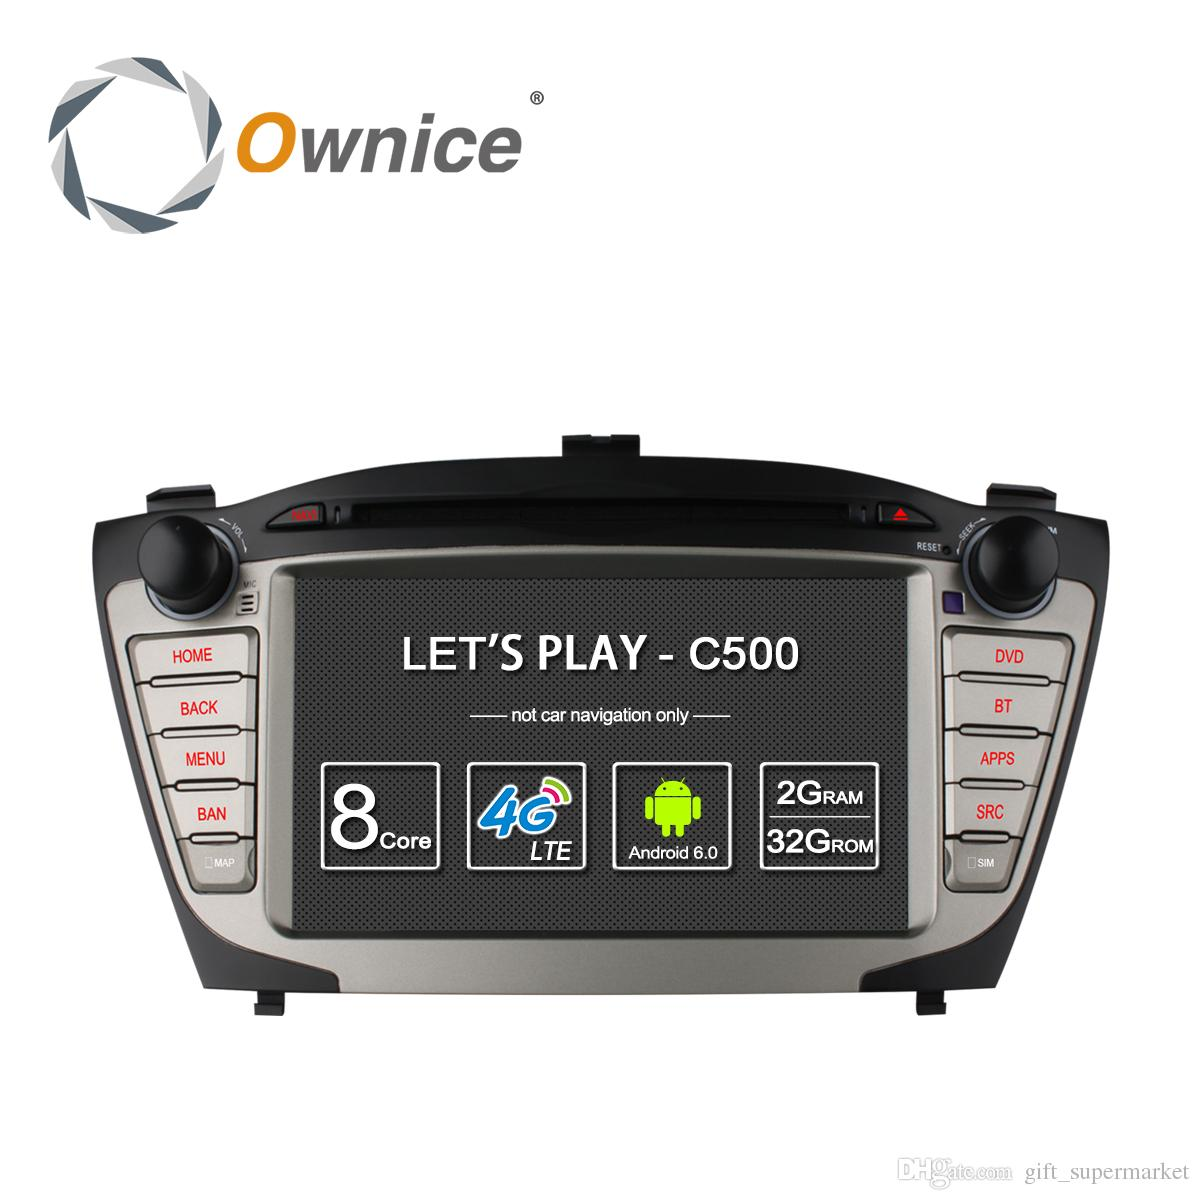 Wiring Diagram For Ownice C500 Free Download Hyundai Ix35 4g Sim Lte Tucson 2009 2015 Android 6 0 Car